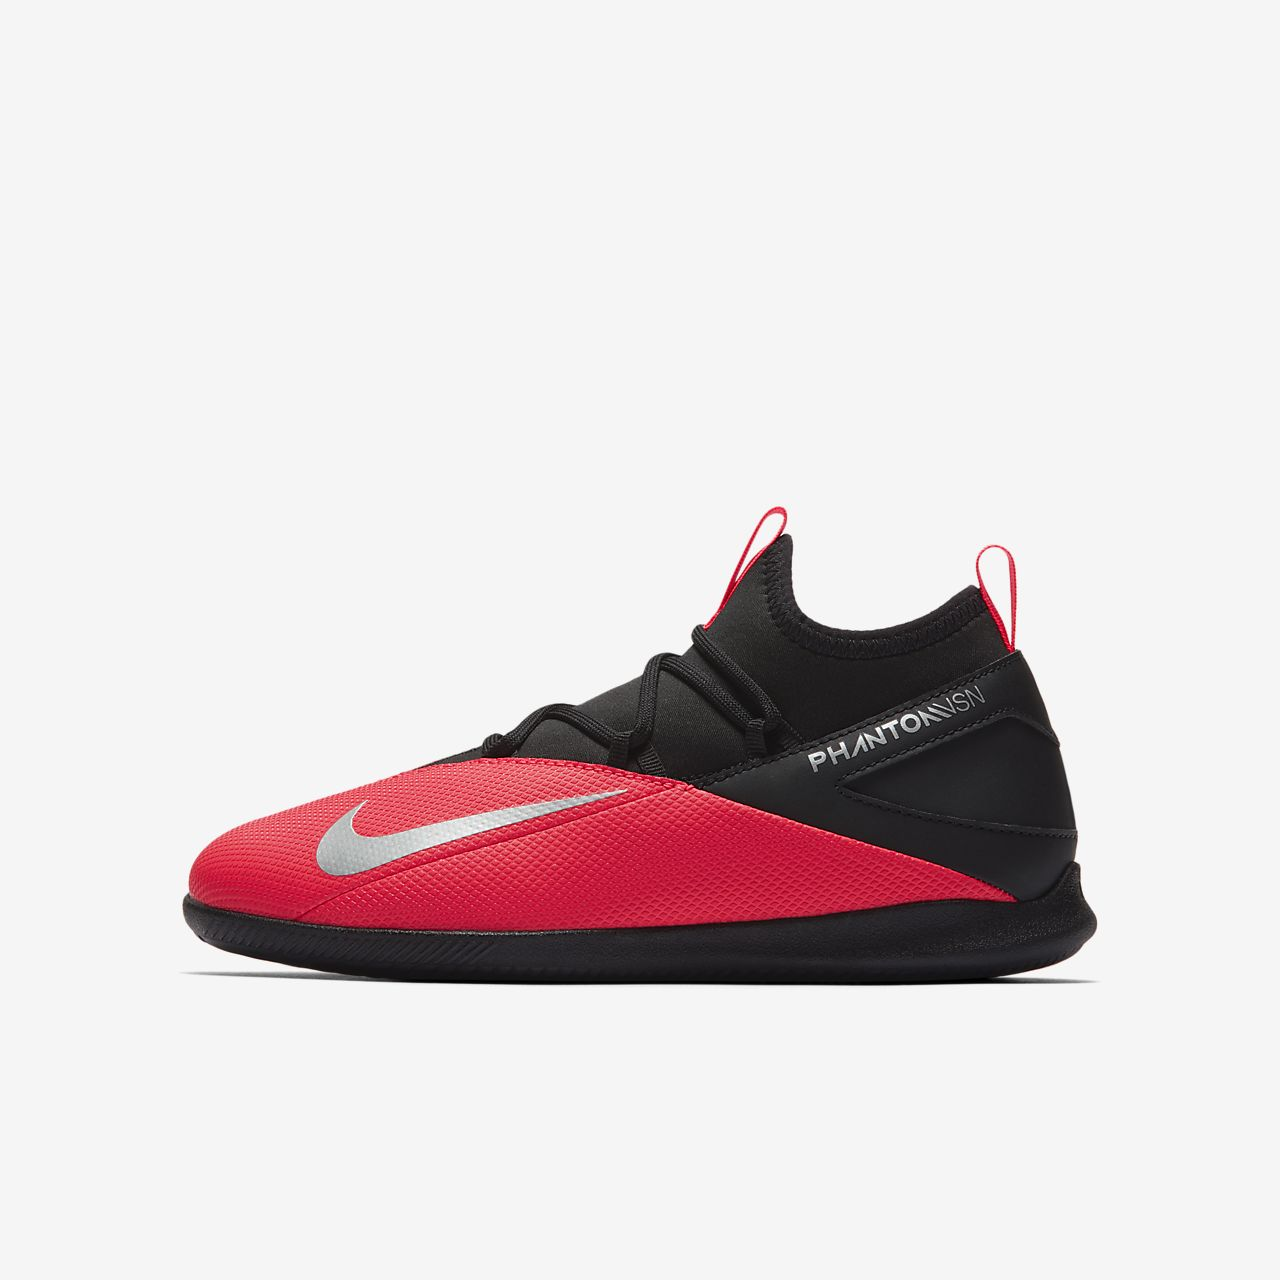 chaussures foot salle nike enfant